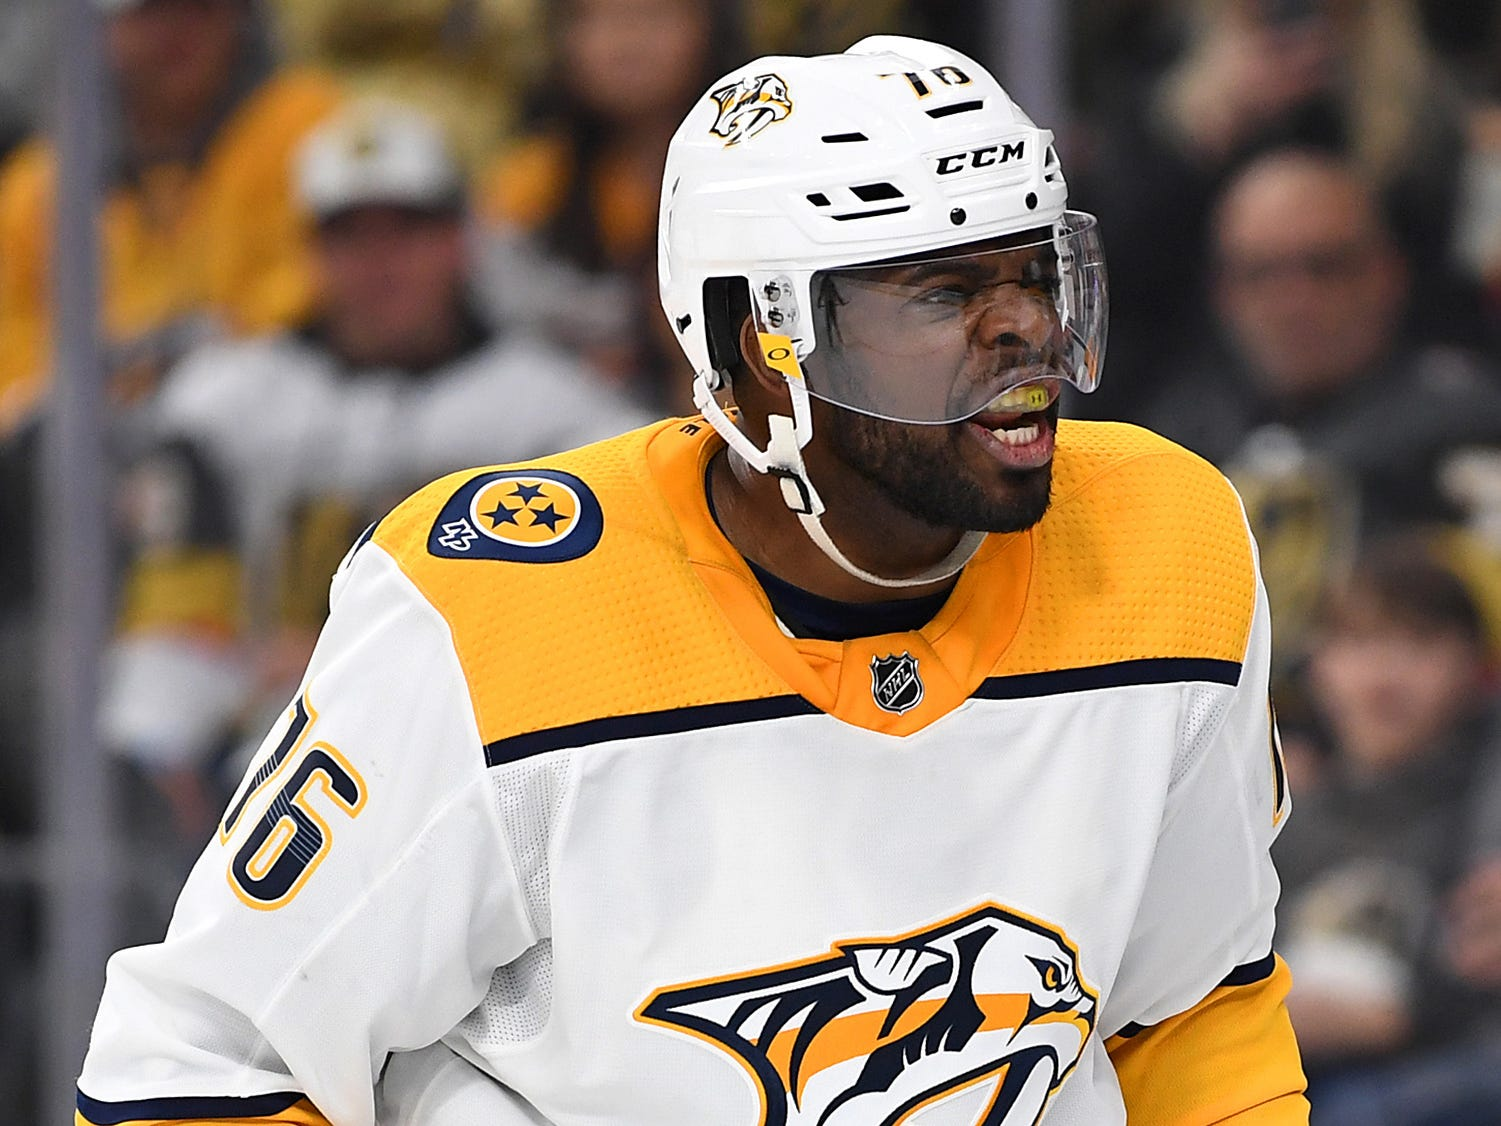 Jan 23, 2019: Predators 2, Golden Knights 1 -- Nashville Predators defenseman P.K. Subban (76) reacts after a play during the second period against the Vegas Golden Knights at T-Mobile Arena.